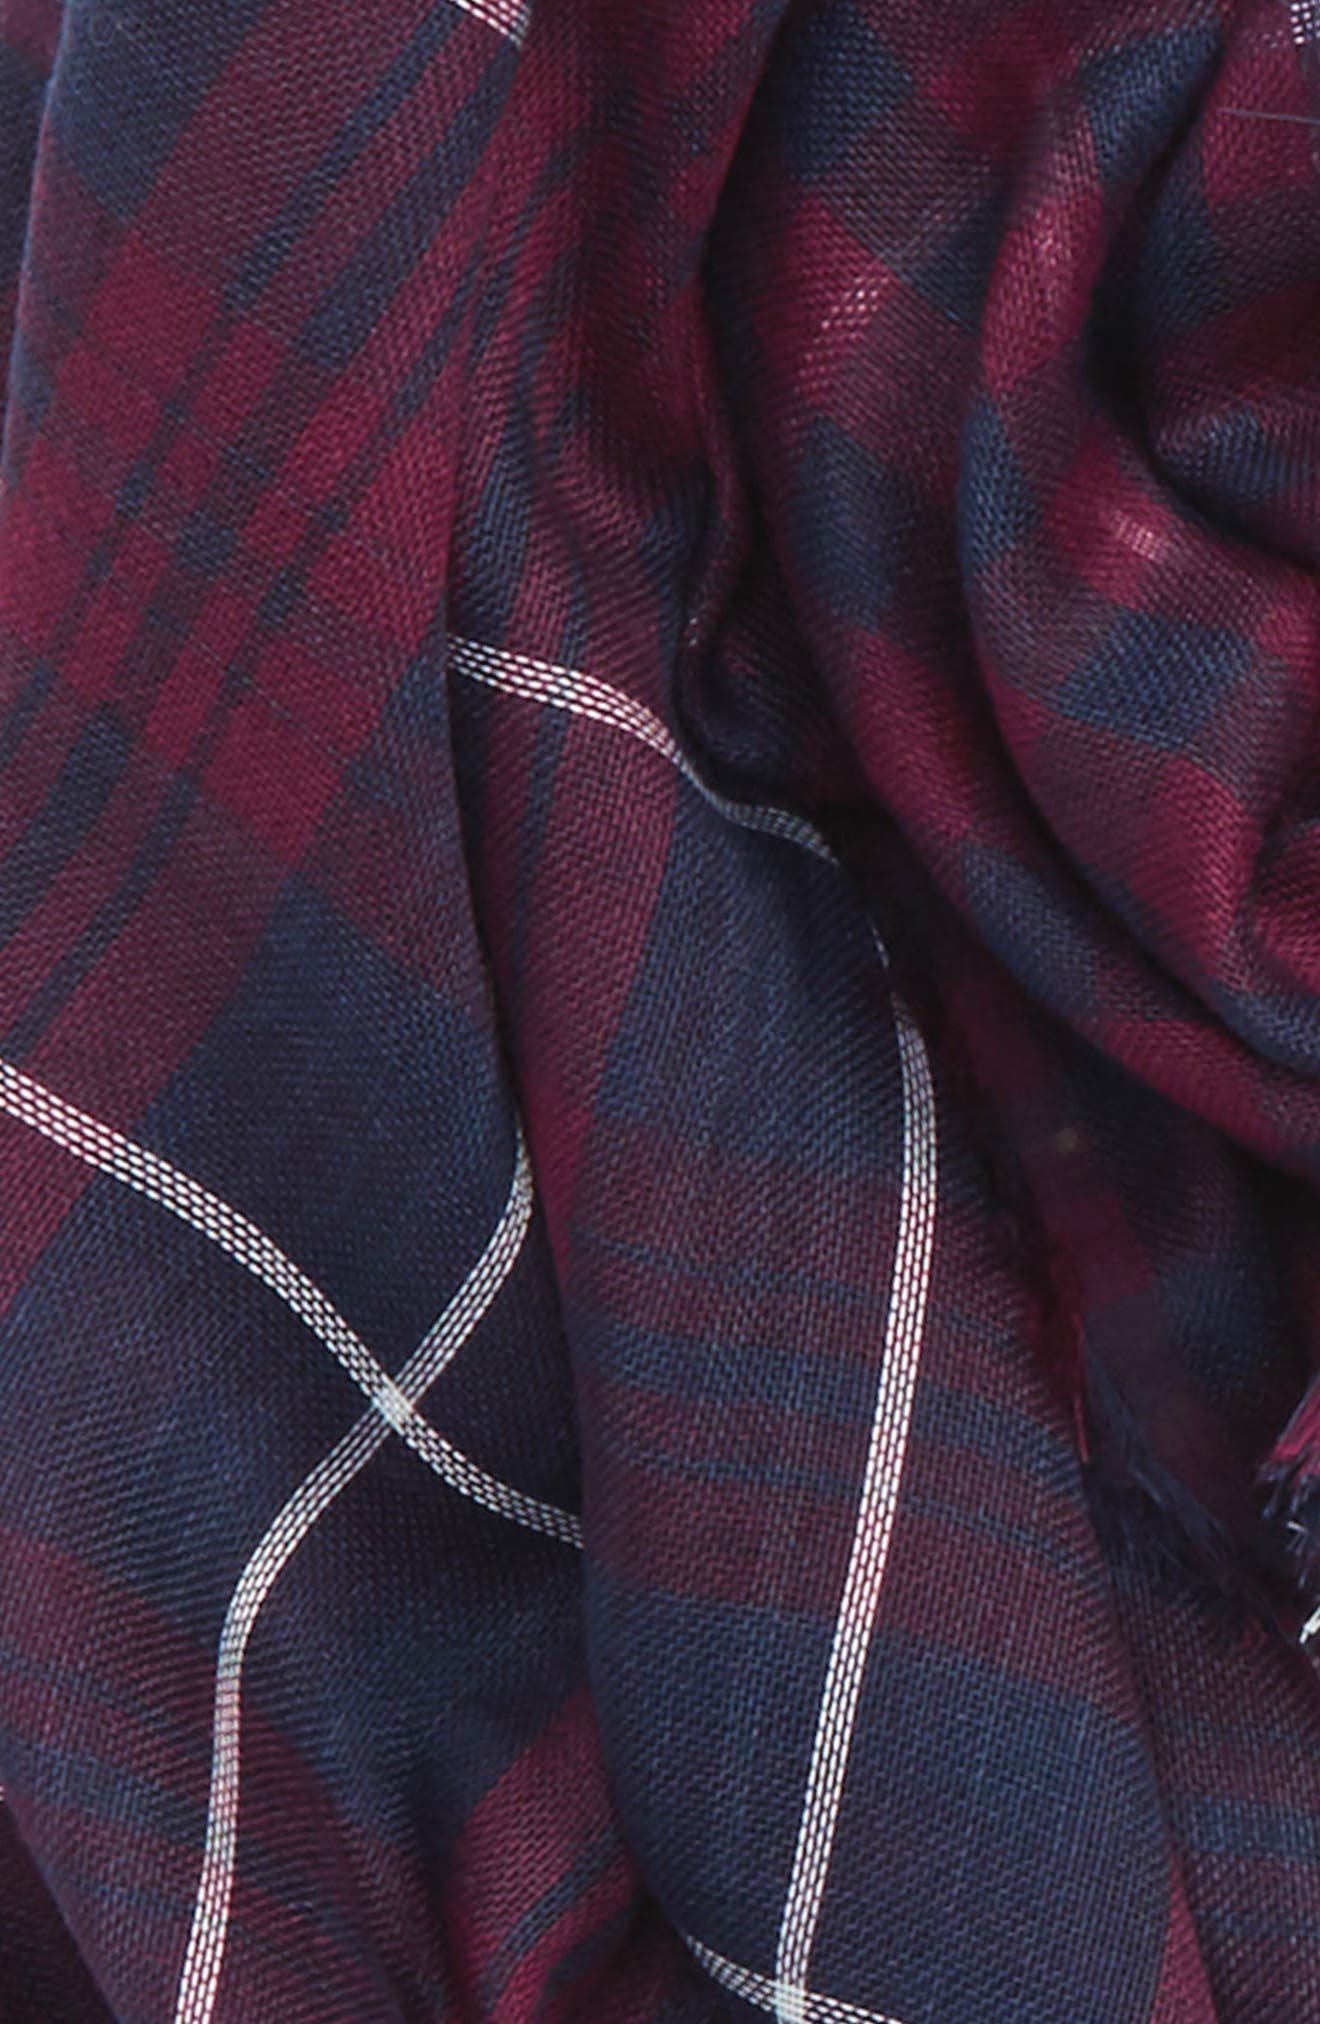 David & Young Plaid Oblong Scarf,                             Alternate thumbnail 3, color,                             Blue/ Red